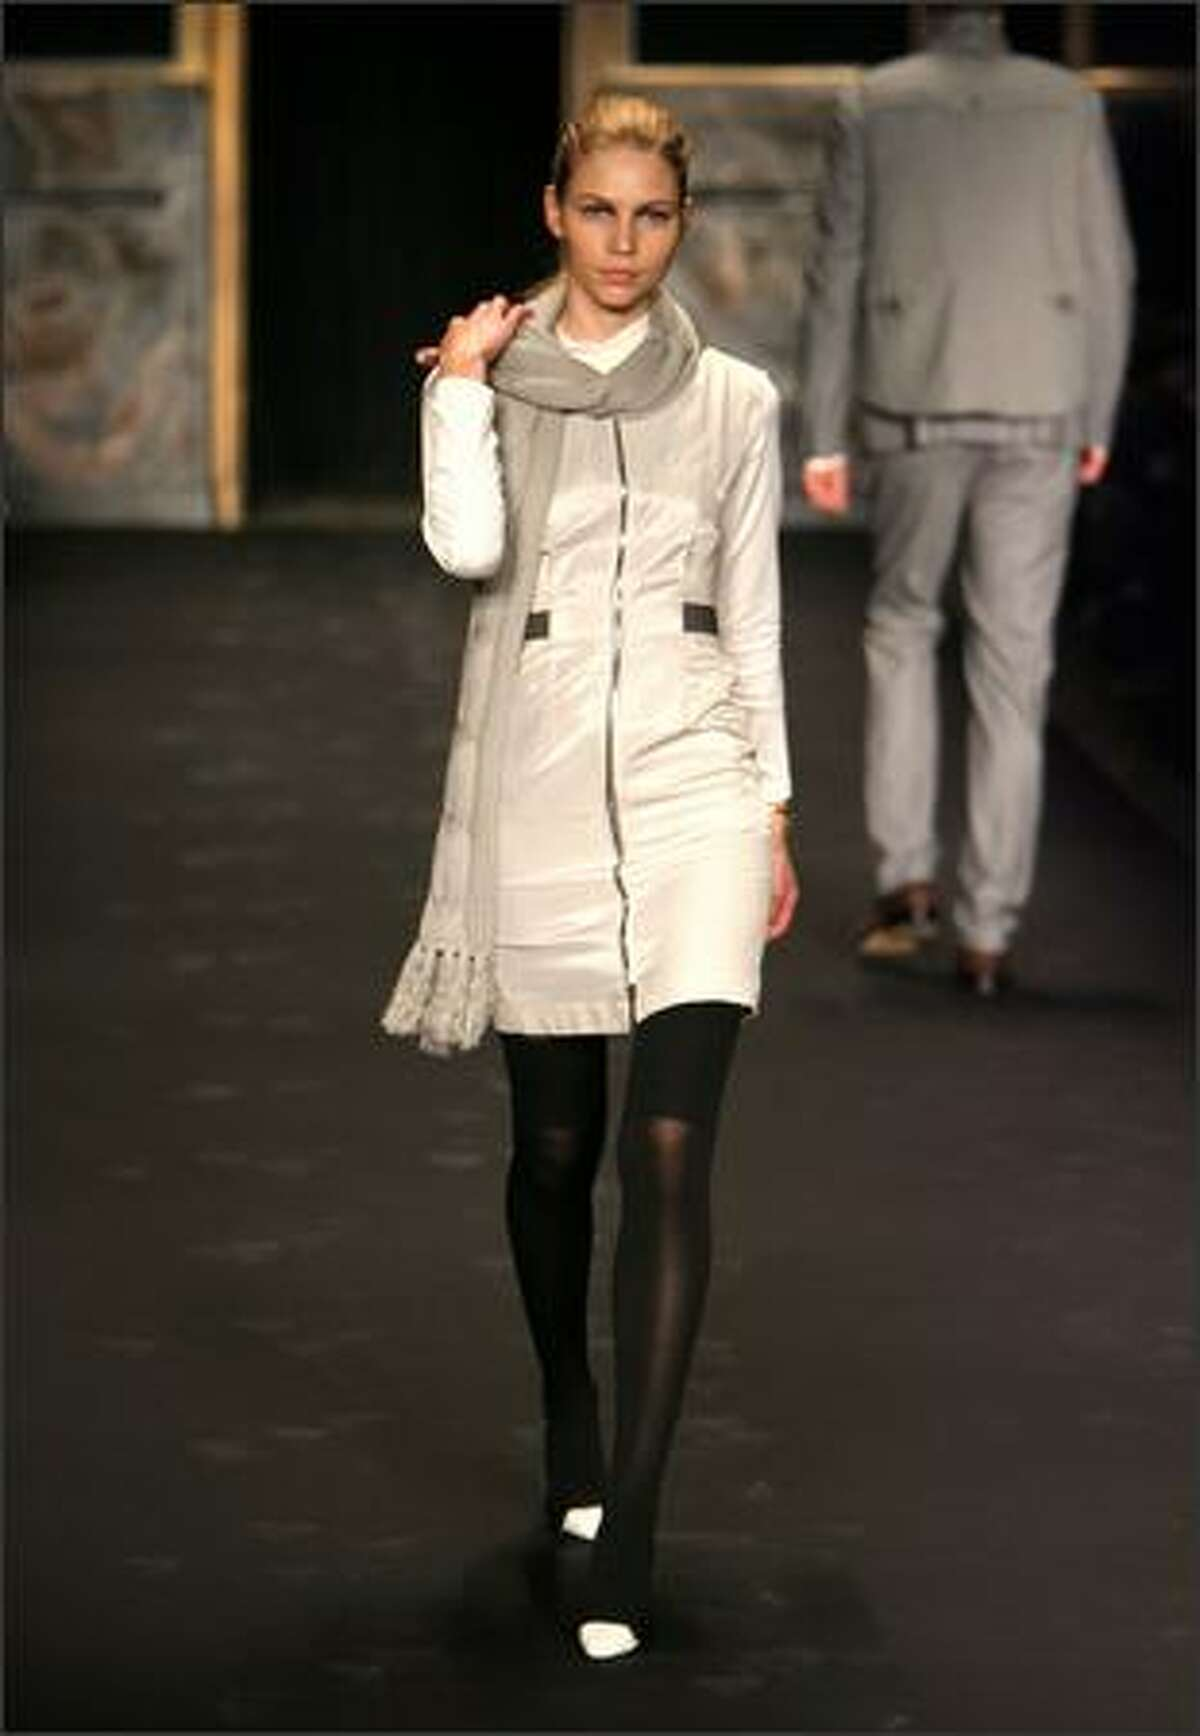 A model walks the runway at the Rag & Bone fall 2008 fashion show during Mercedes-Benz Fashion Week at Cipriani 42nd Street in New York.